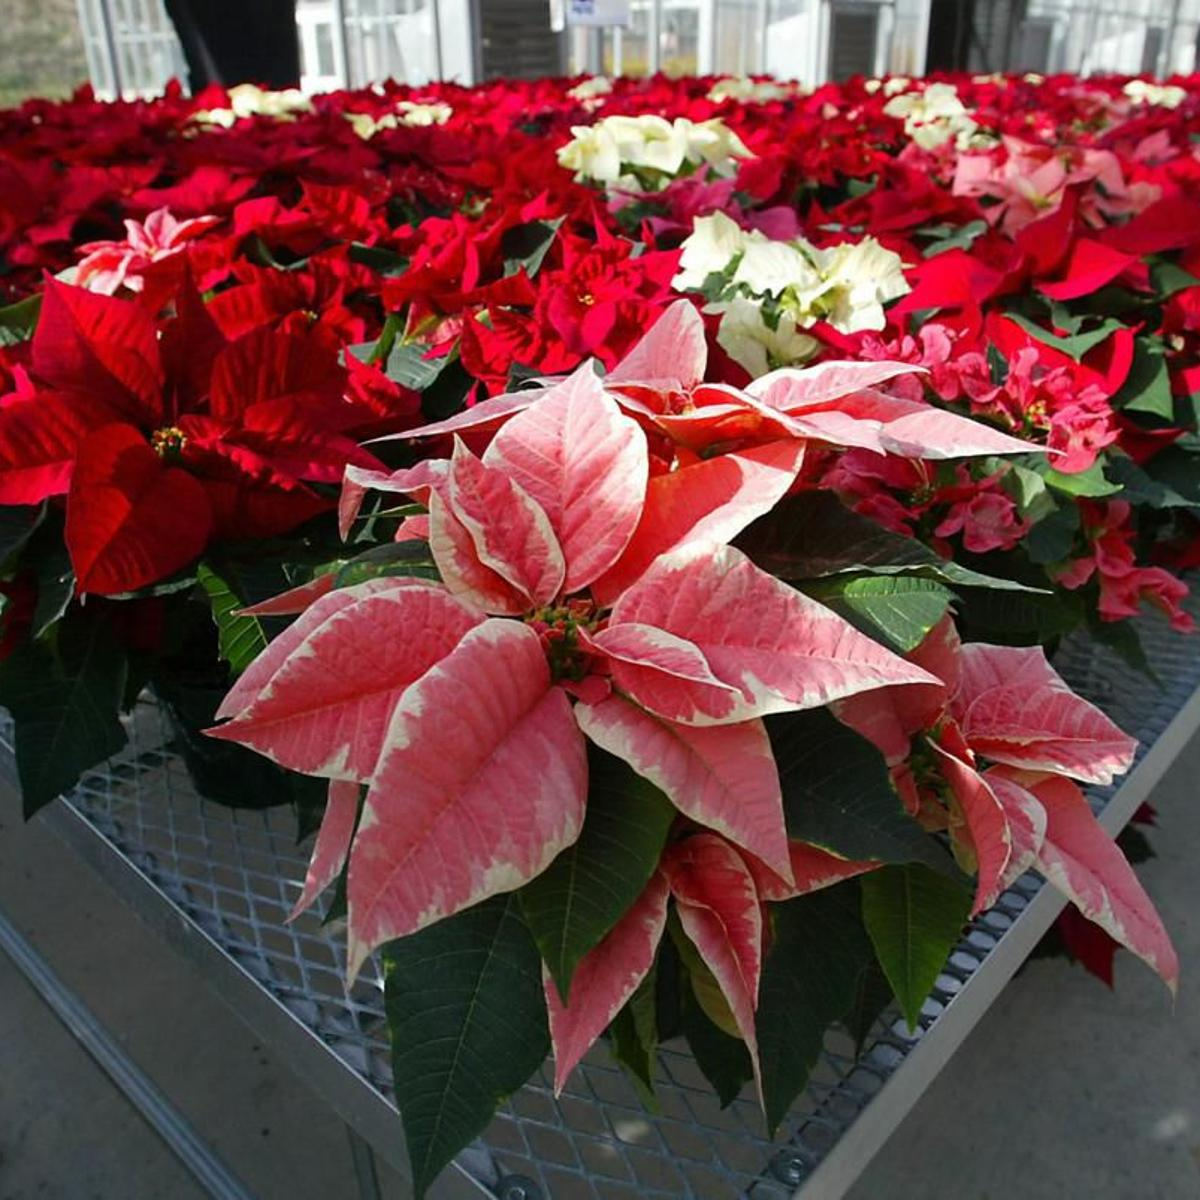 Can The Season S Plentiful Poinsettia Displays Be Harmful To You Or Your Pets Lifestyle Gazette Com